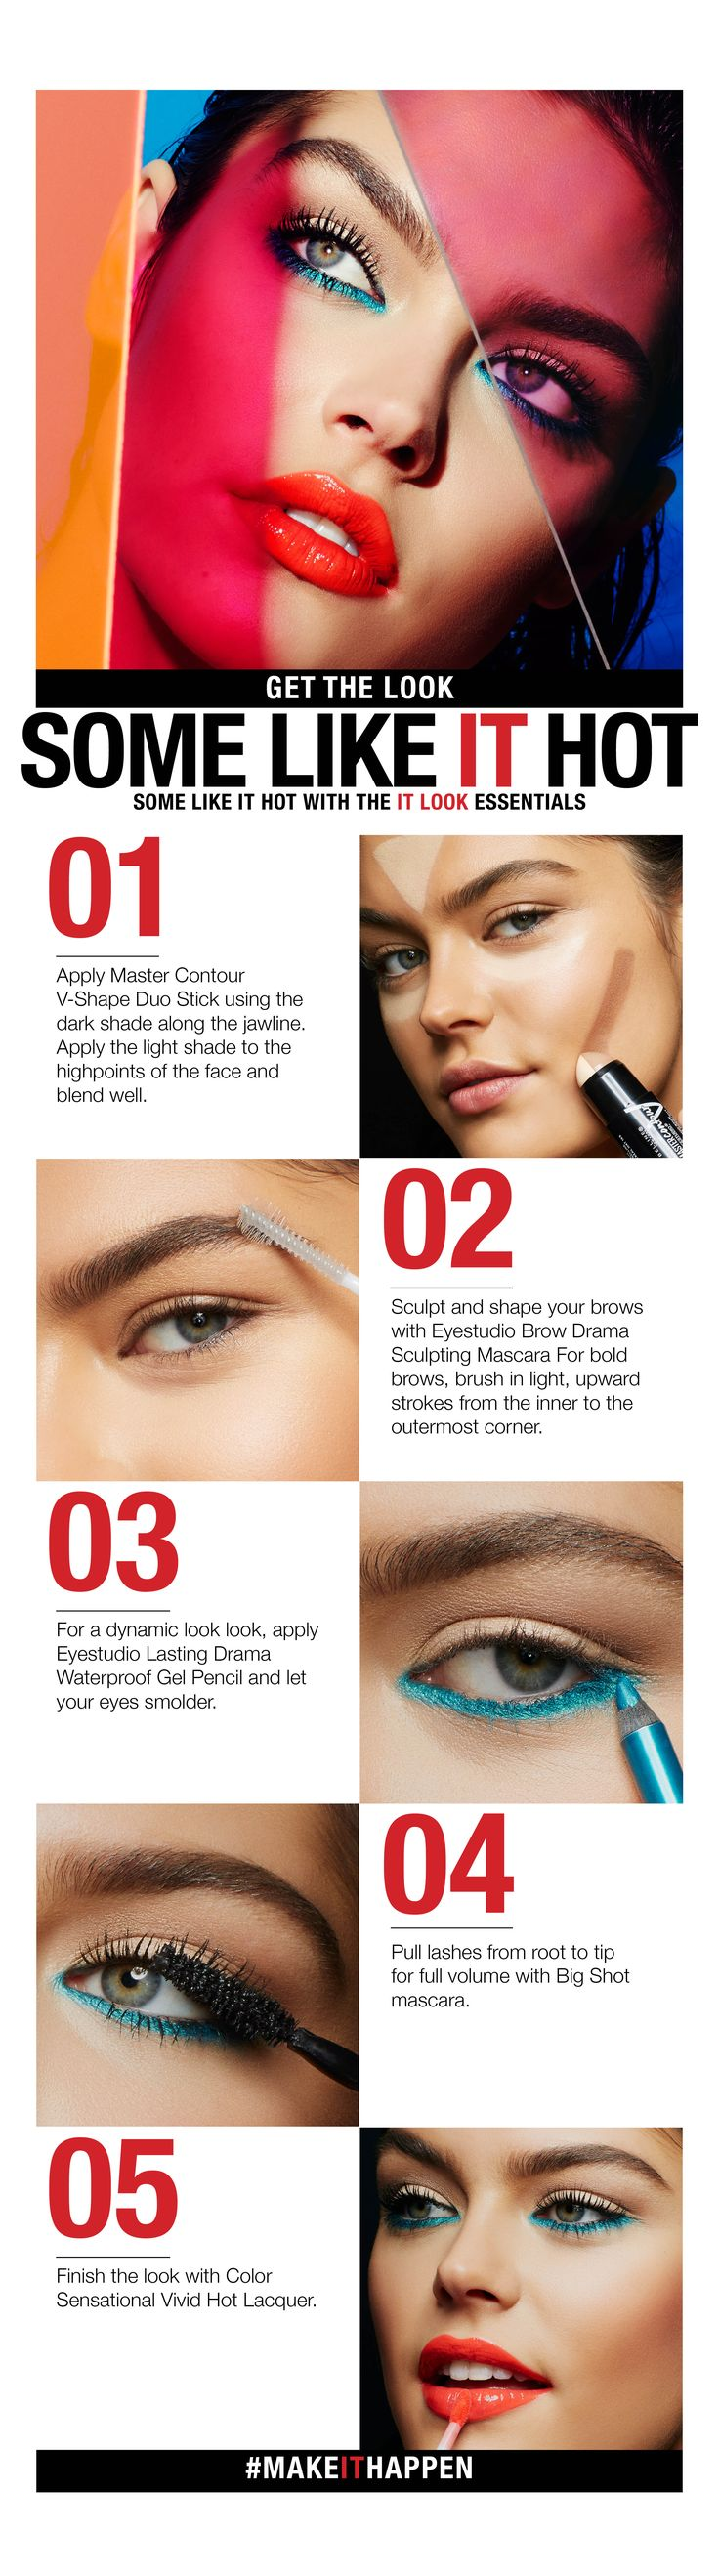 Tips to sensational summer skin - 490 Best Cosmetics Makeup Tips Images On Pinterest Makeup Tips Make Up And Makeup Trends